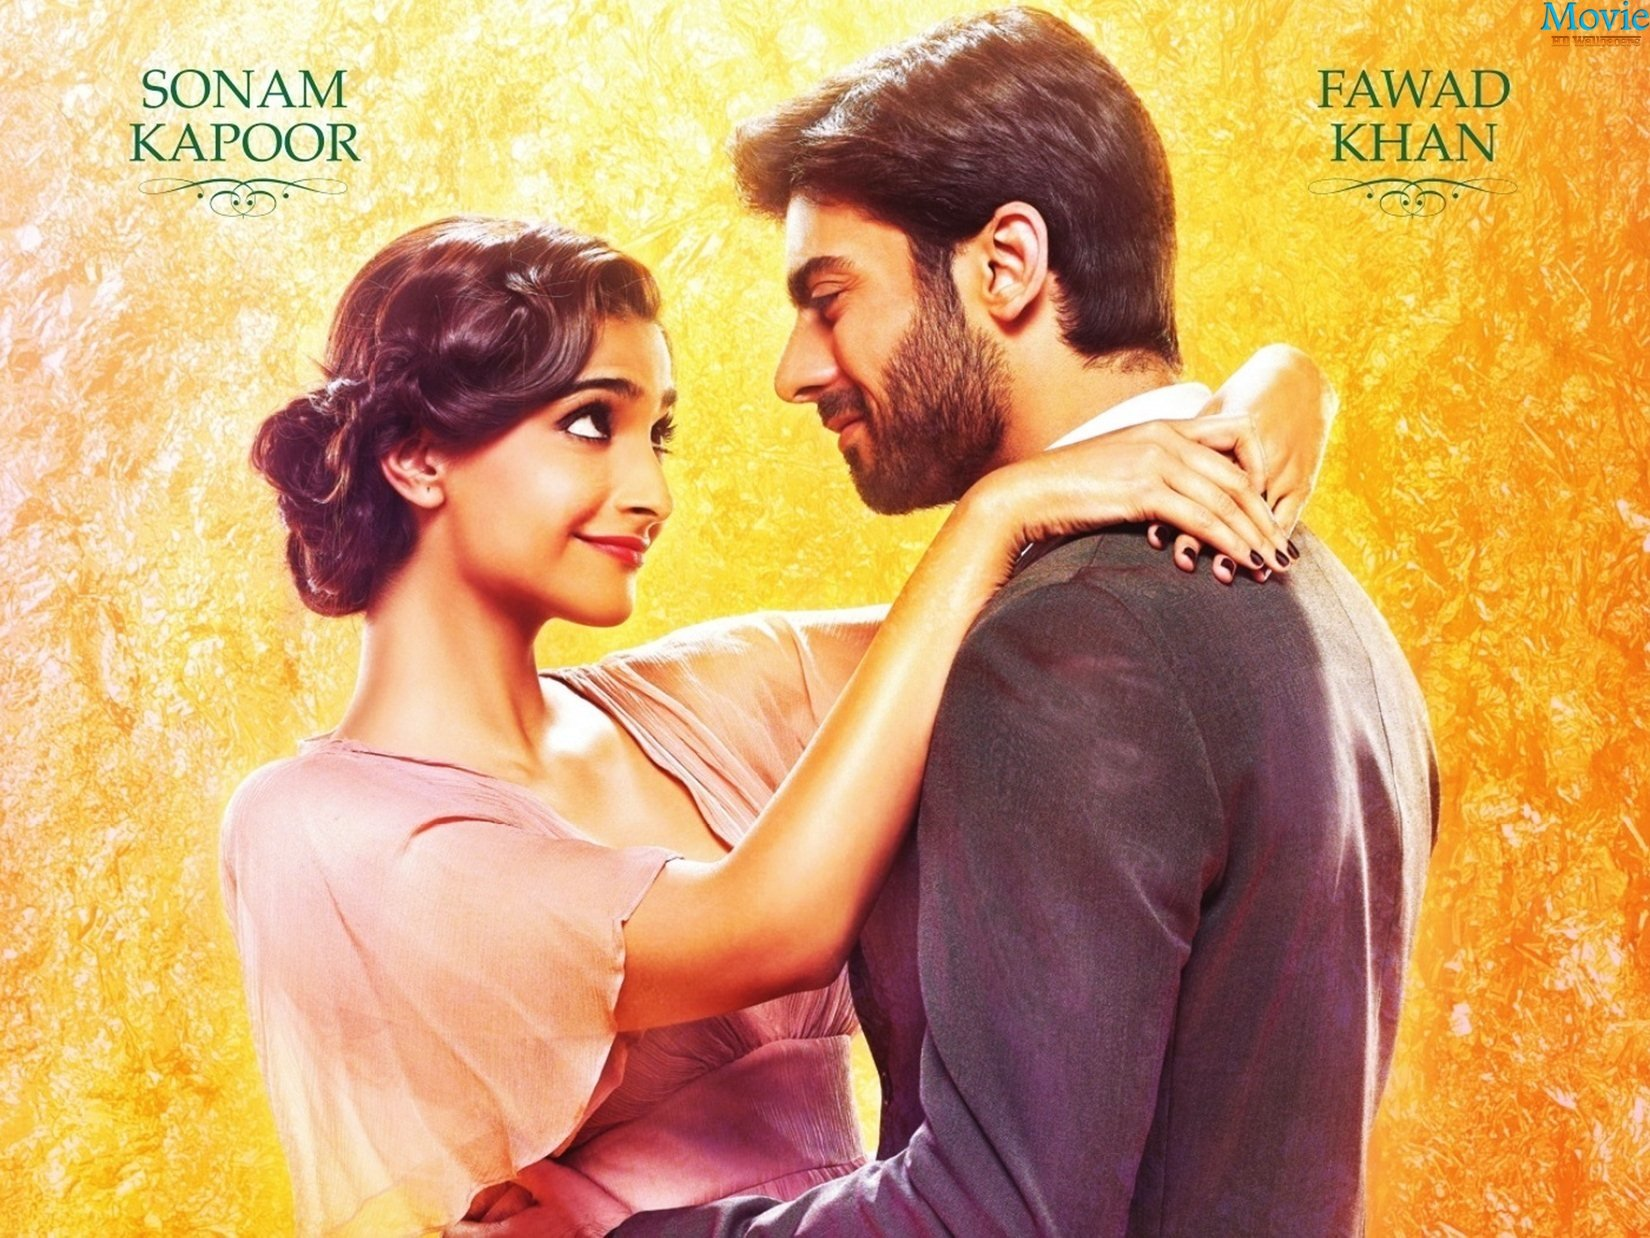 Hd wallpaper khubsurat - Khoobsurat Movie Hd Wallpapers